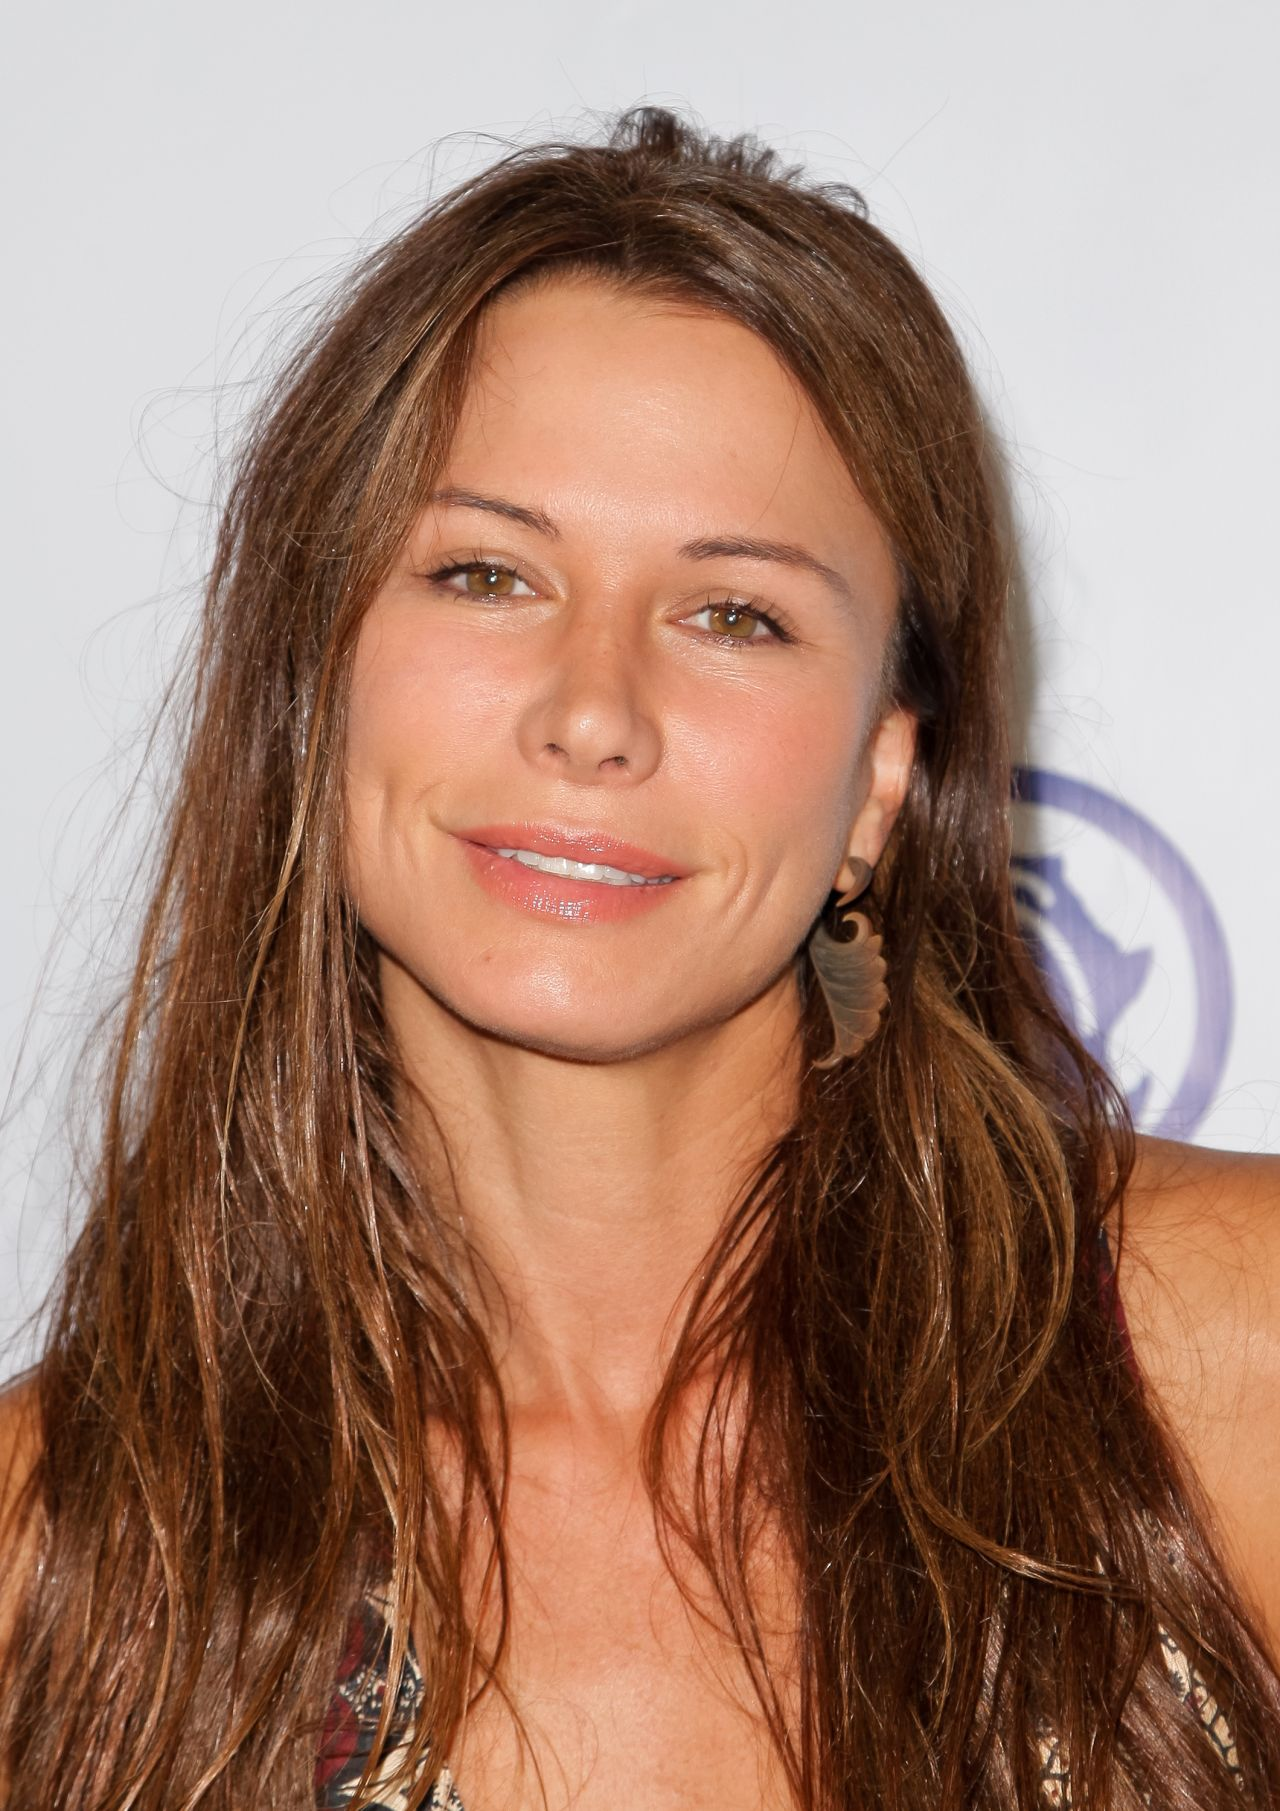 Rhona Mitra - GEANCO Foundations Fundraiser in Hollywood